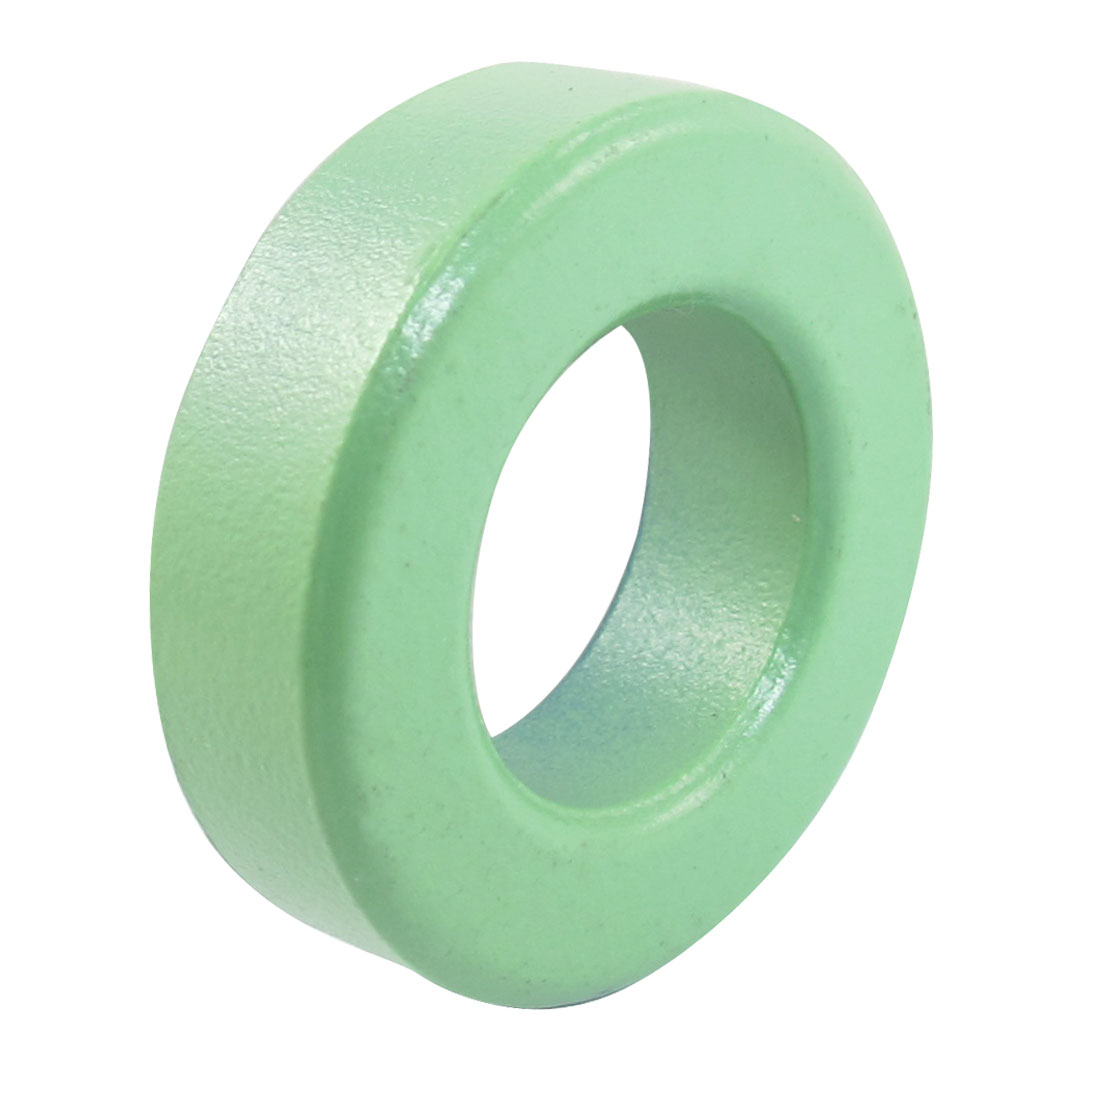 30mm x 21mm x 11mm Power Inductor Ferrite Ring Iron Toroidal Light Green Blue